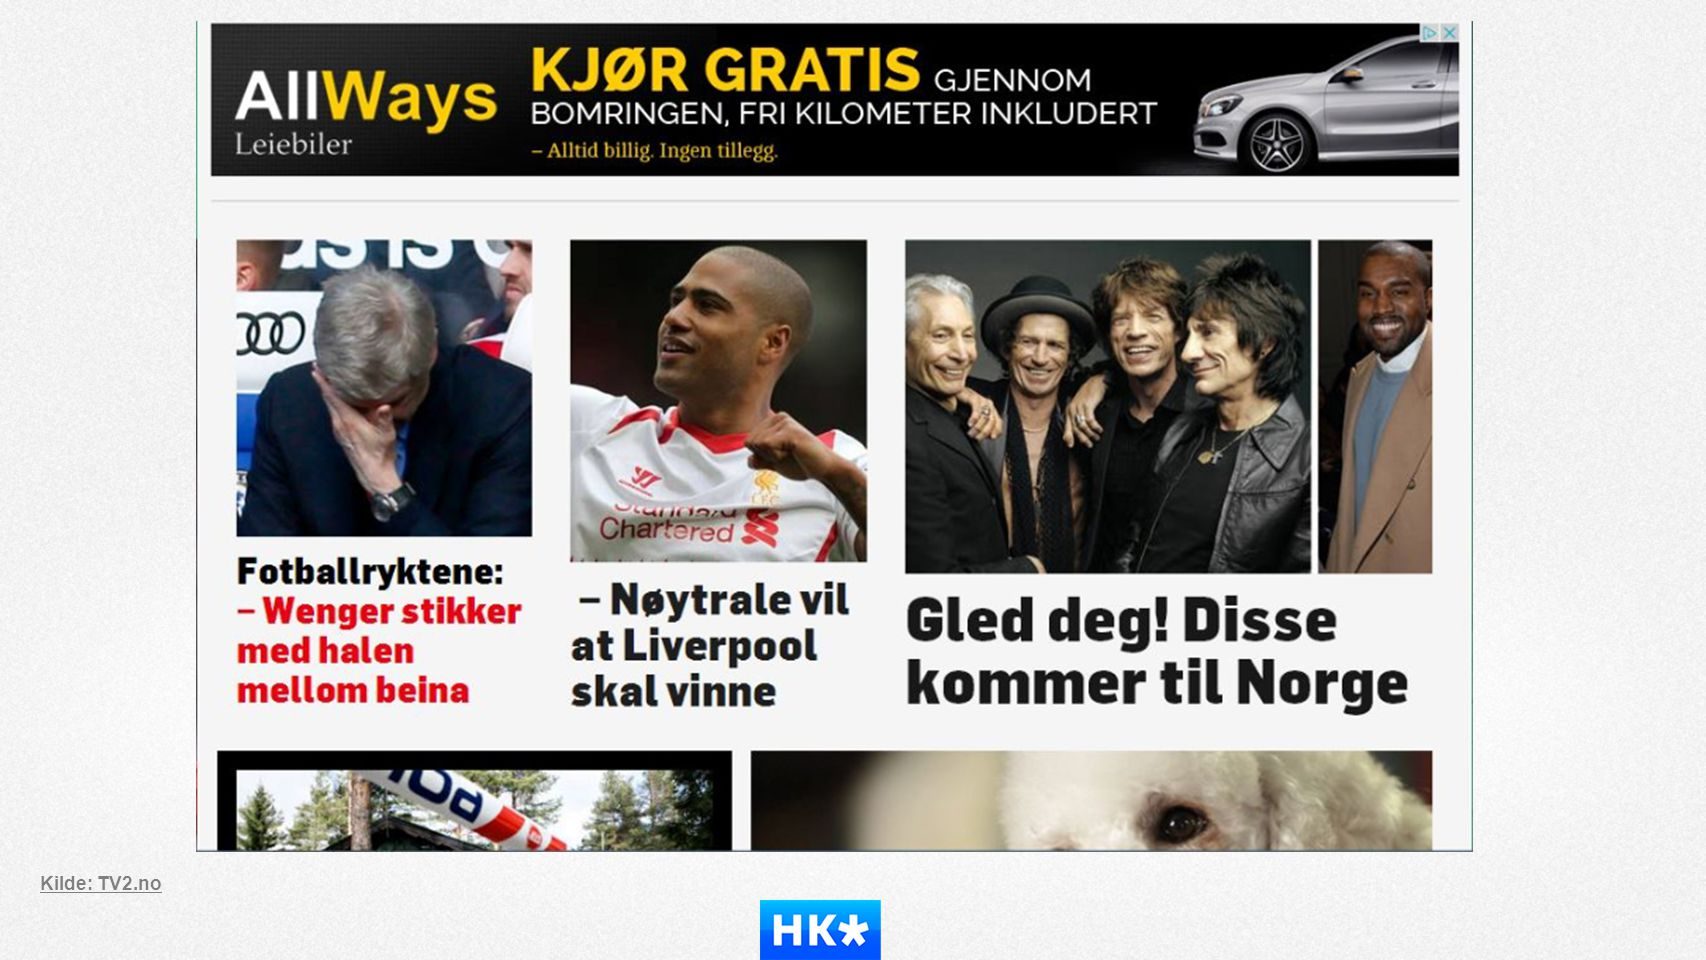 Kilde: TV2.no